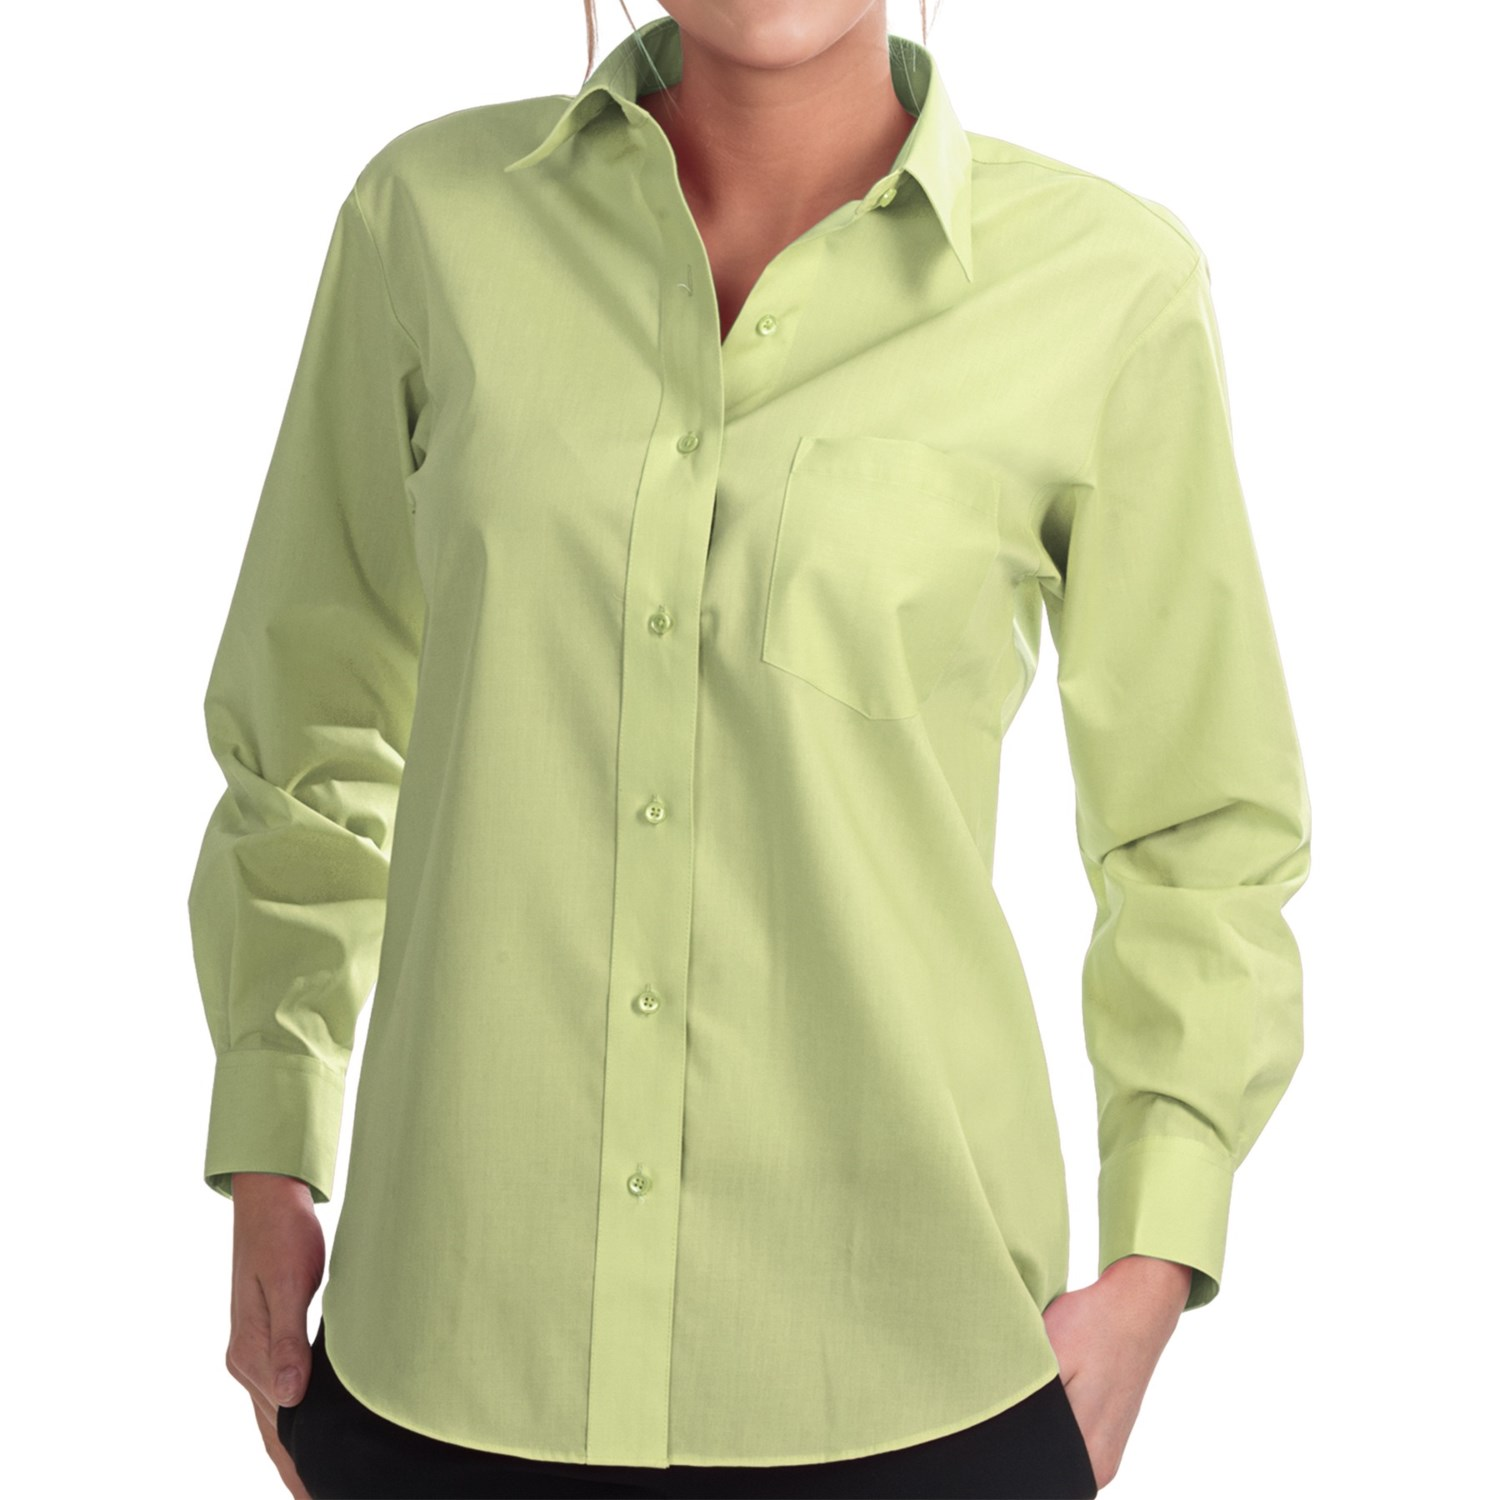 Foxcroft wrinkle free essentials shirt long sleeve for Wrinkle free shirts for women